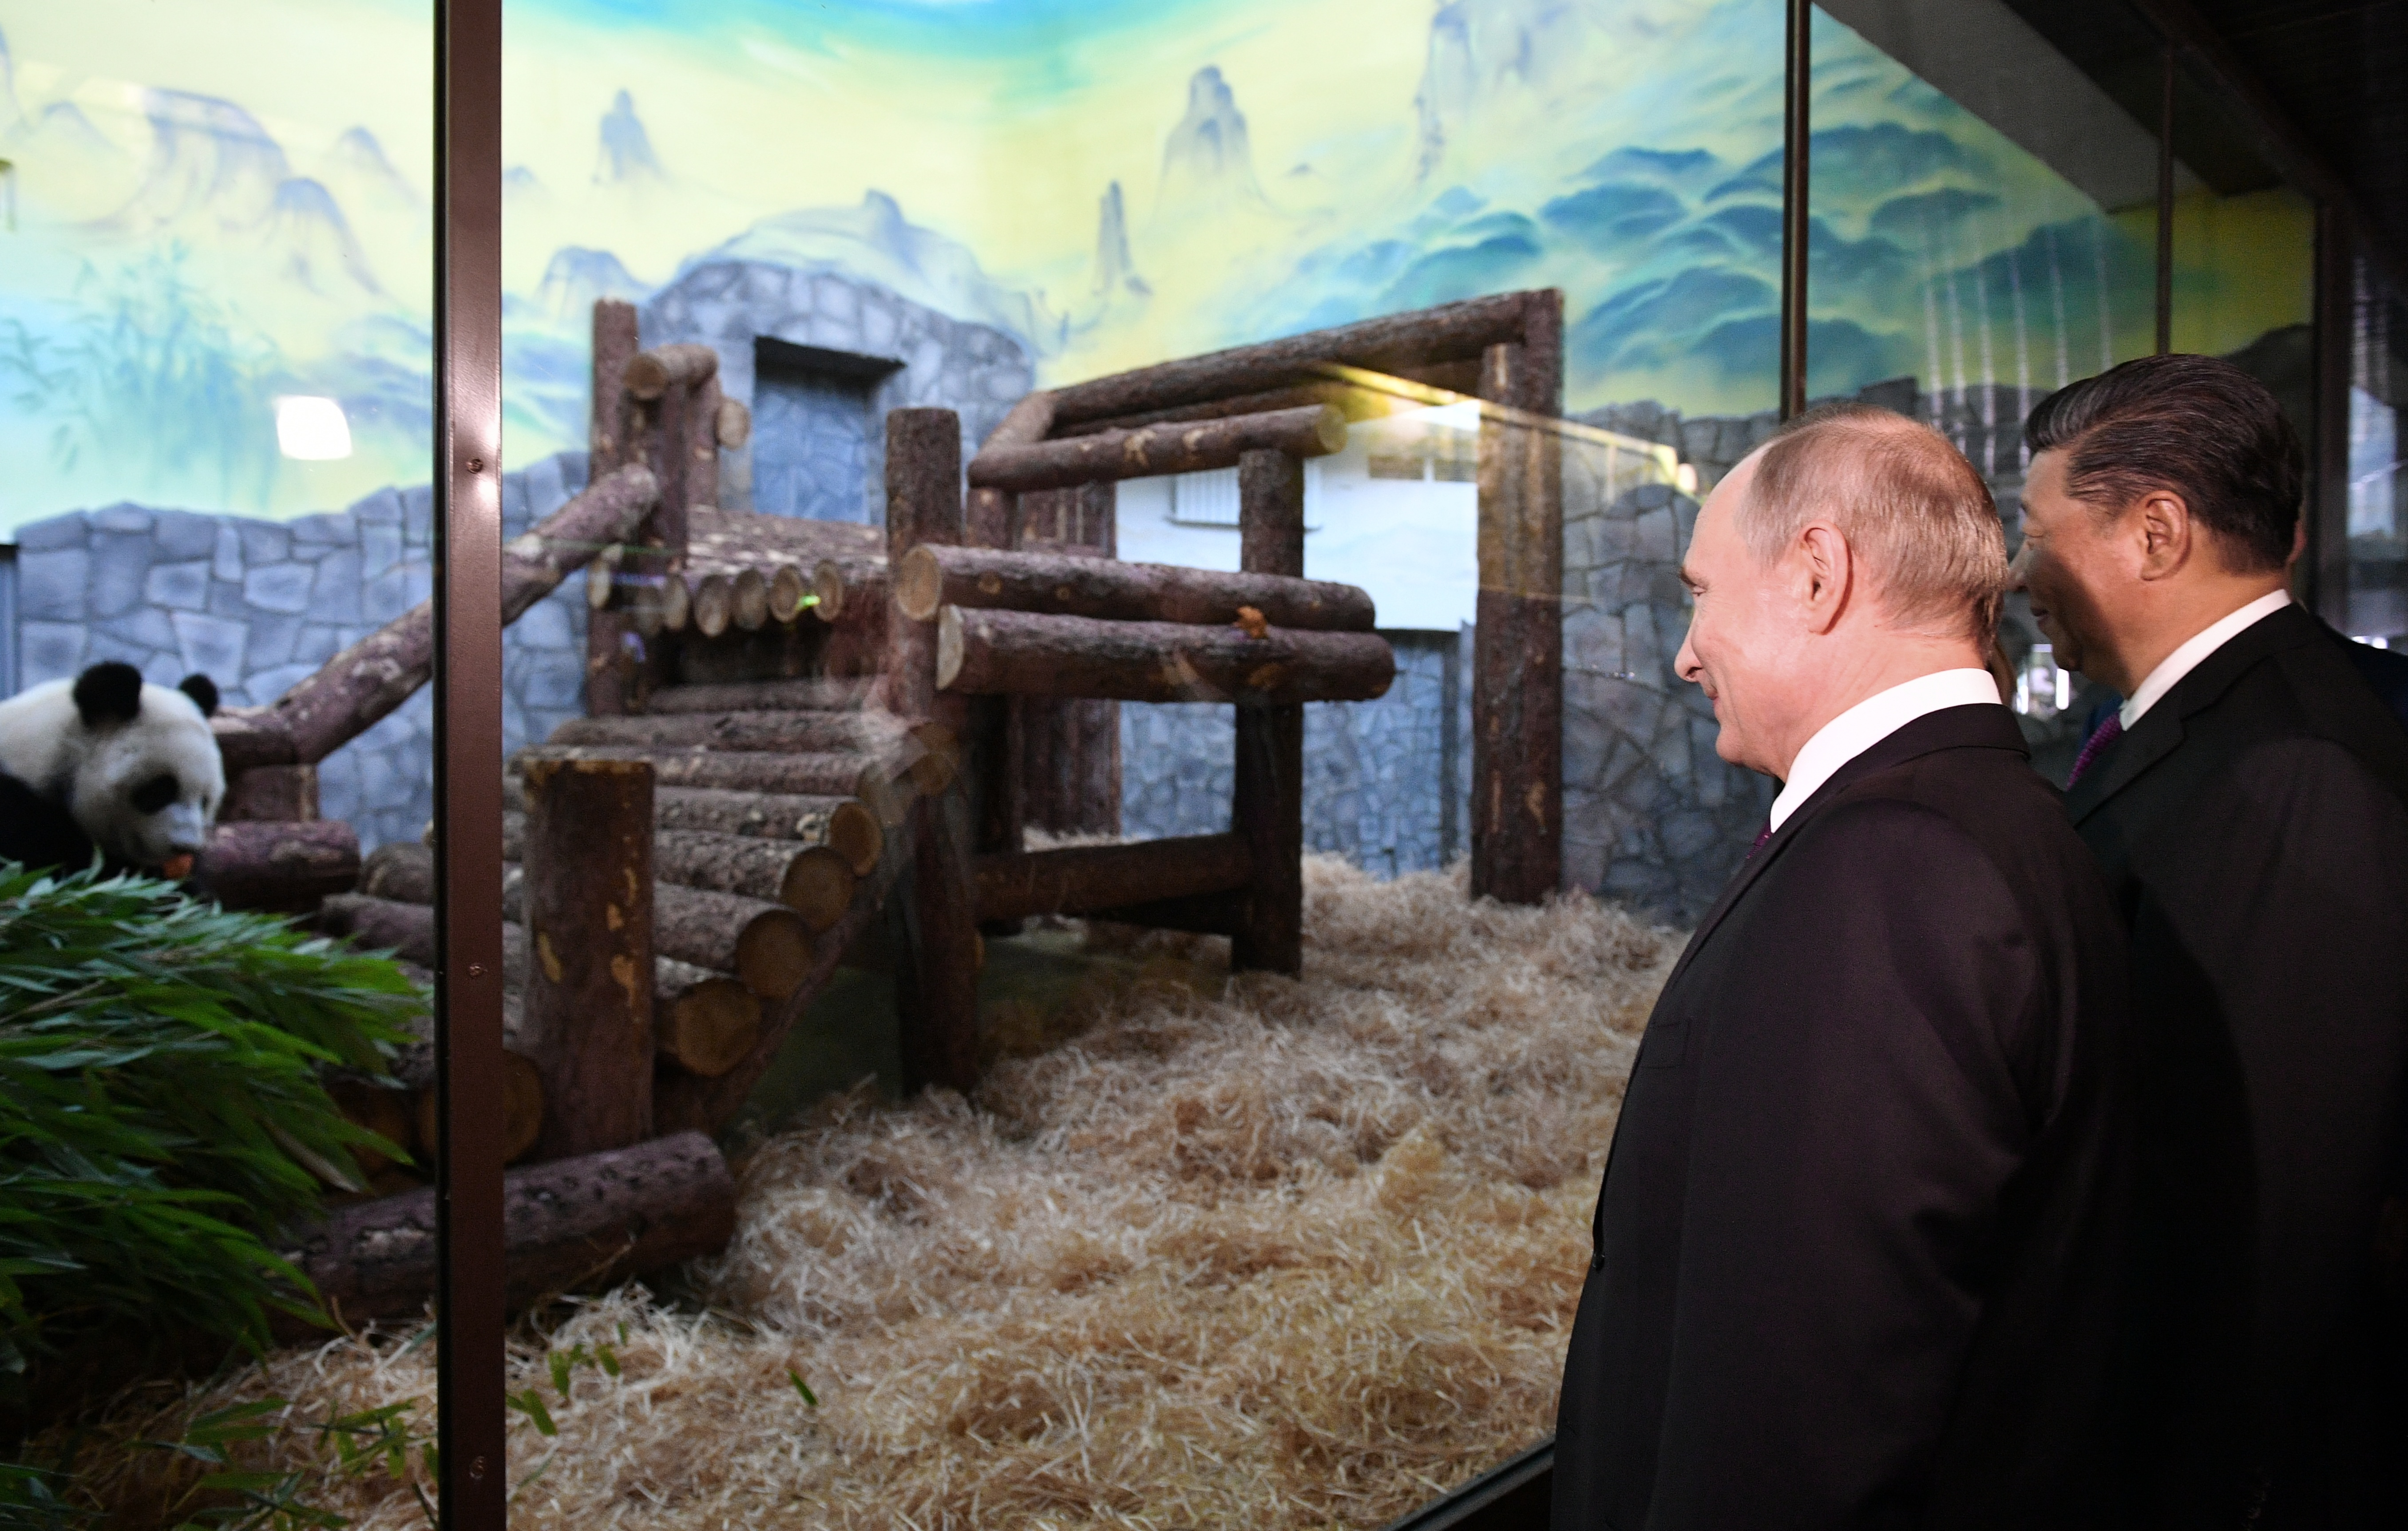 Russian President Vladimir Putin and his Chinese counterpart, Xi Jinping, attend a welcoming ceremony for two Chinese giant pandas, male Ru Yi and female Ding Ding, at the Moscow Zoo on June 5, 2019.